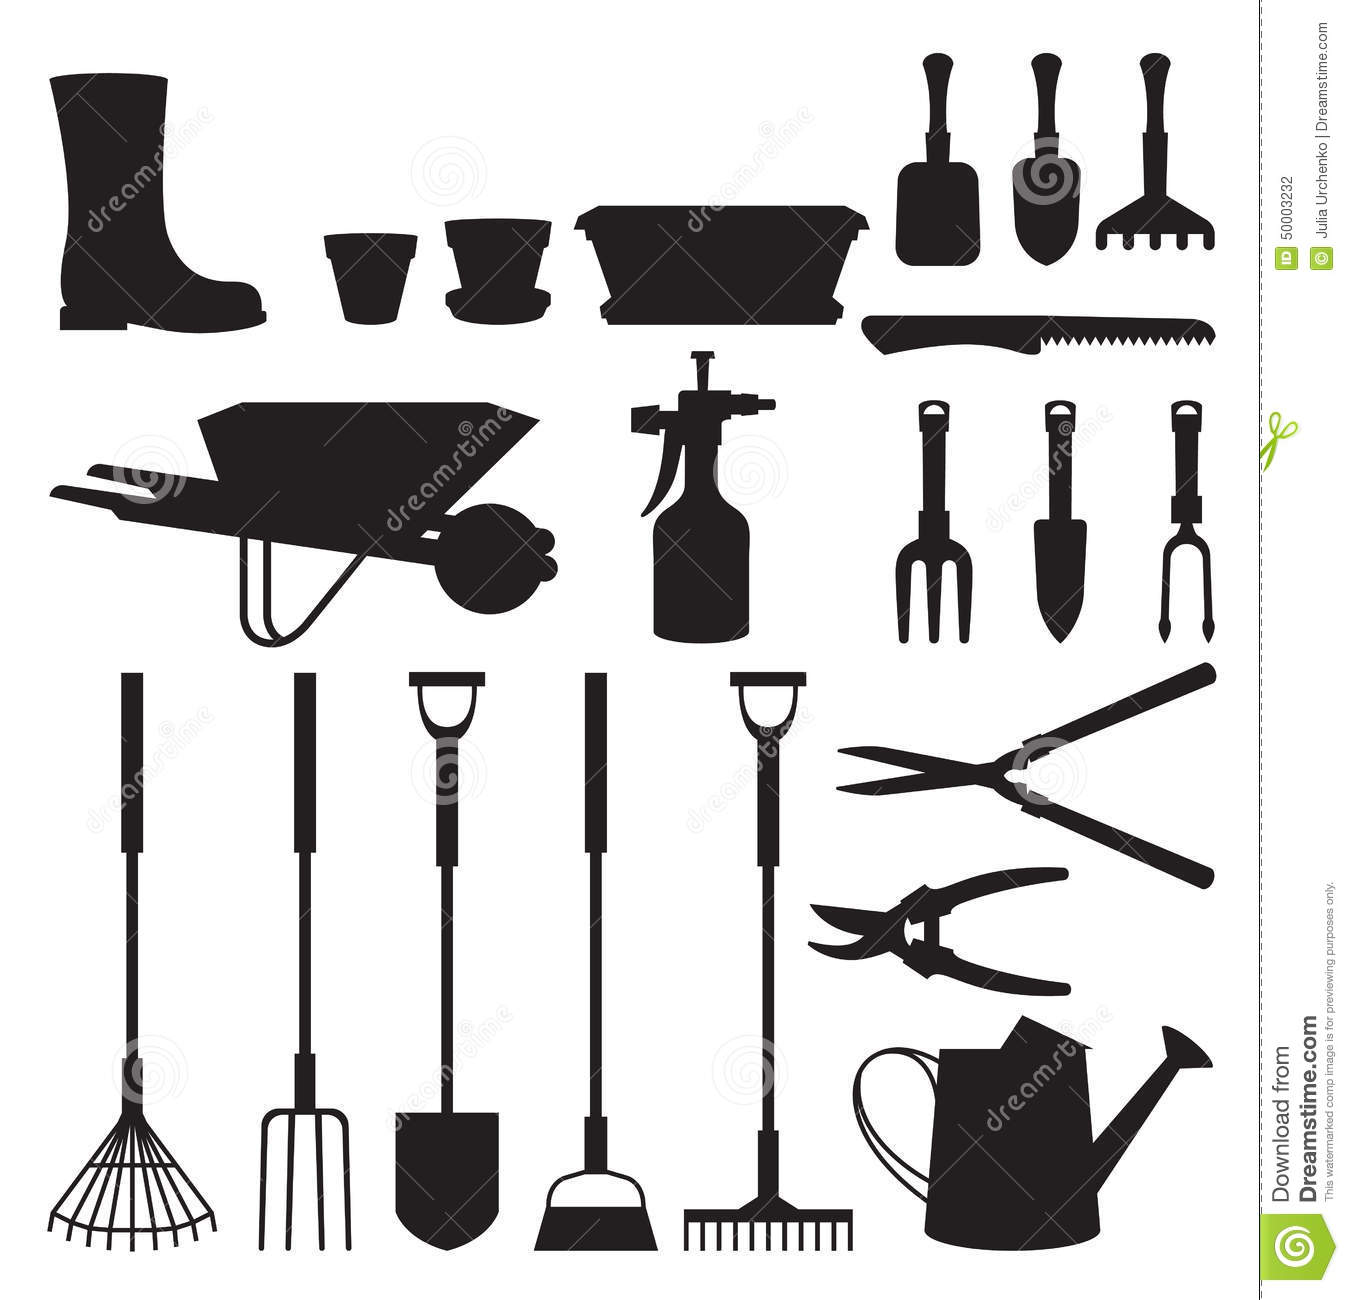 Set of silhouettes of objects garden tools stock vector for Gardening tools vector